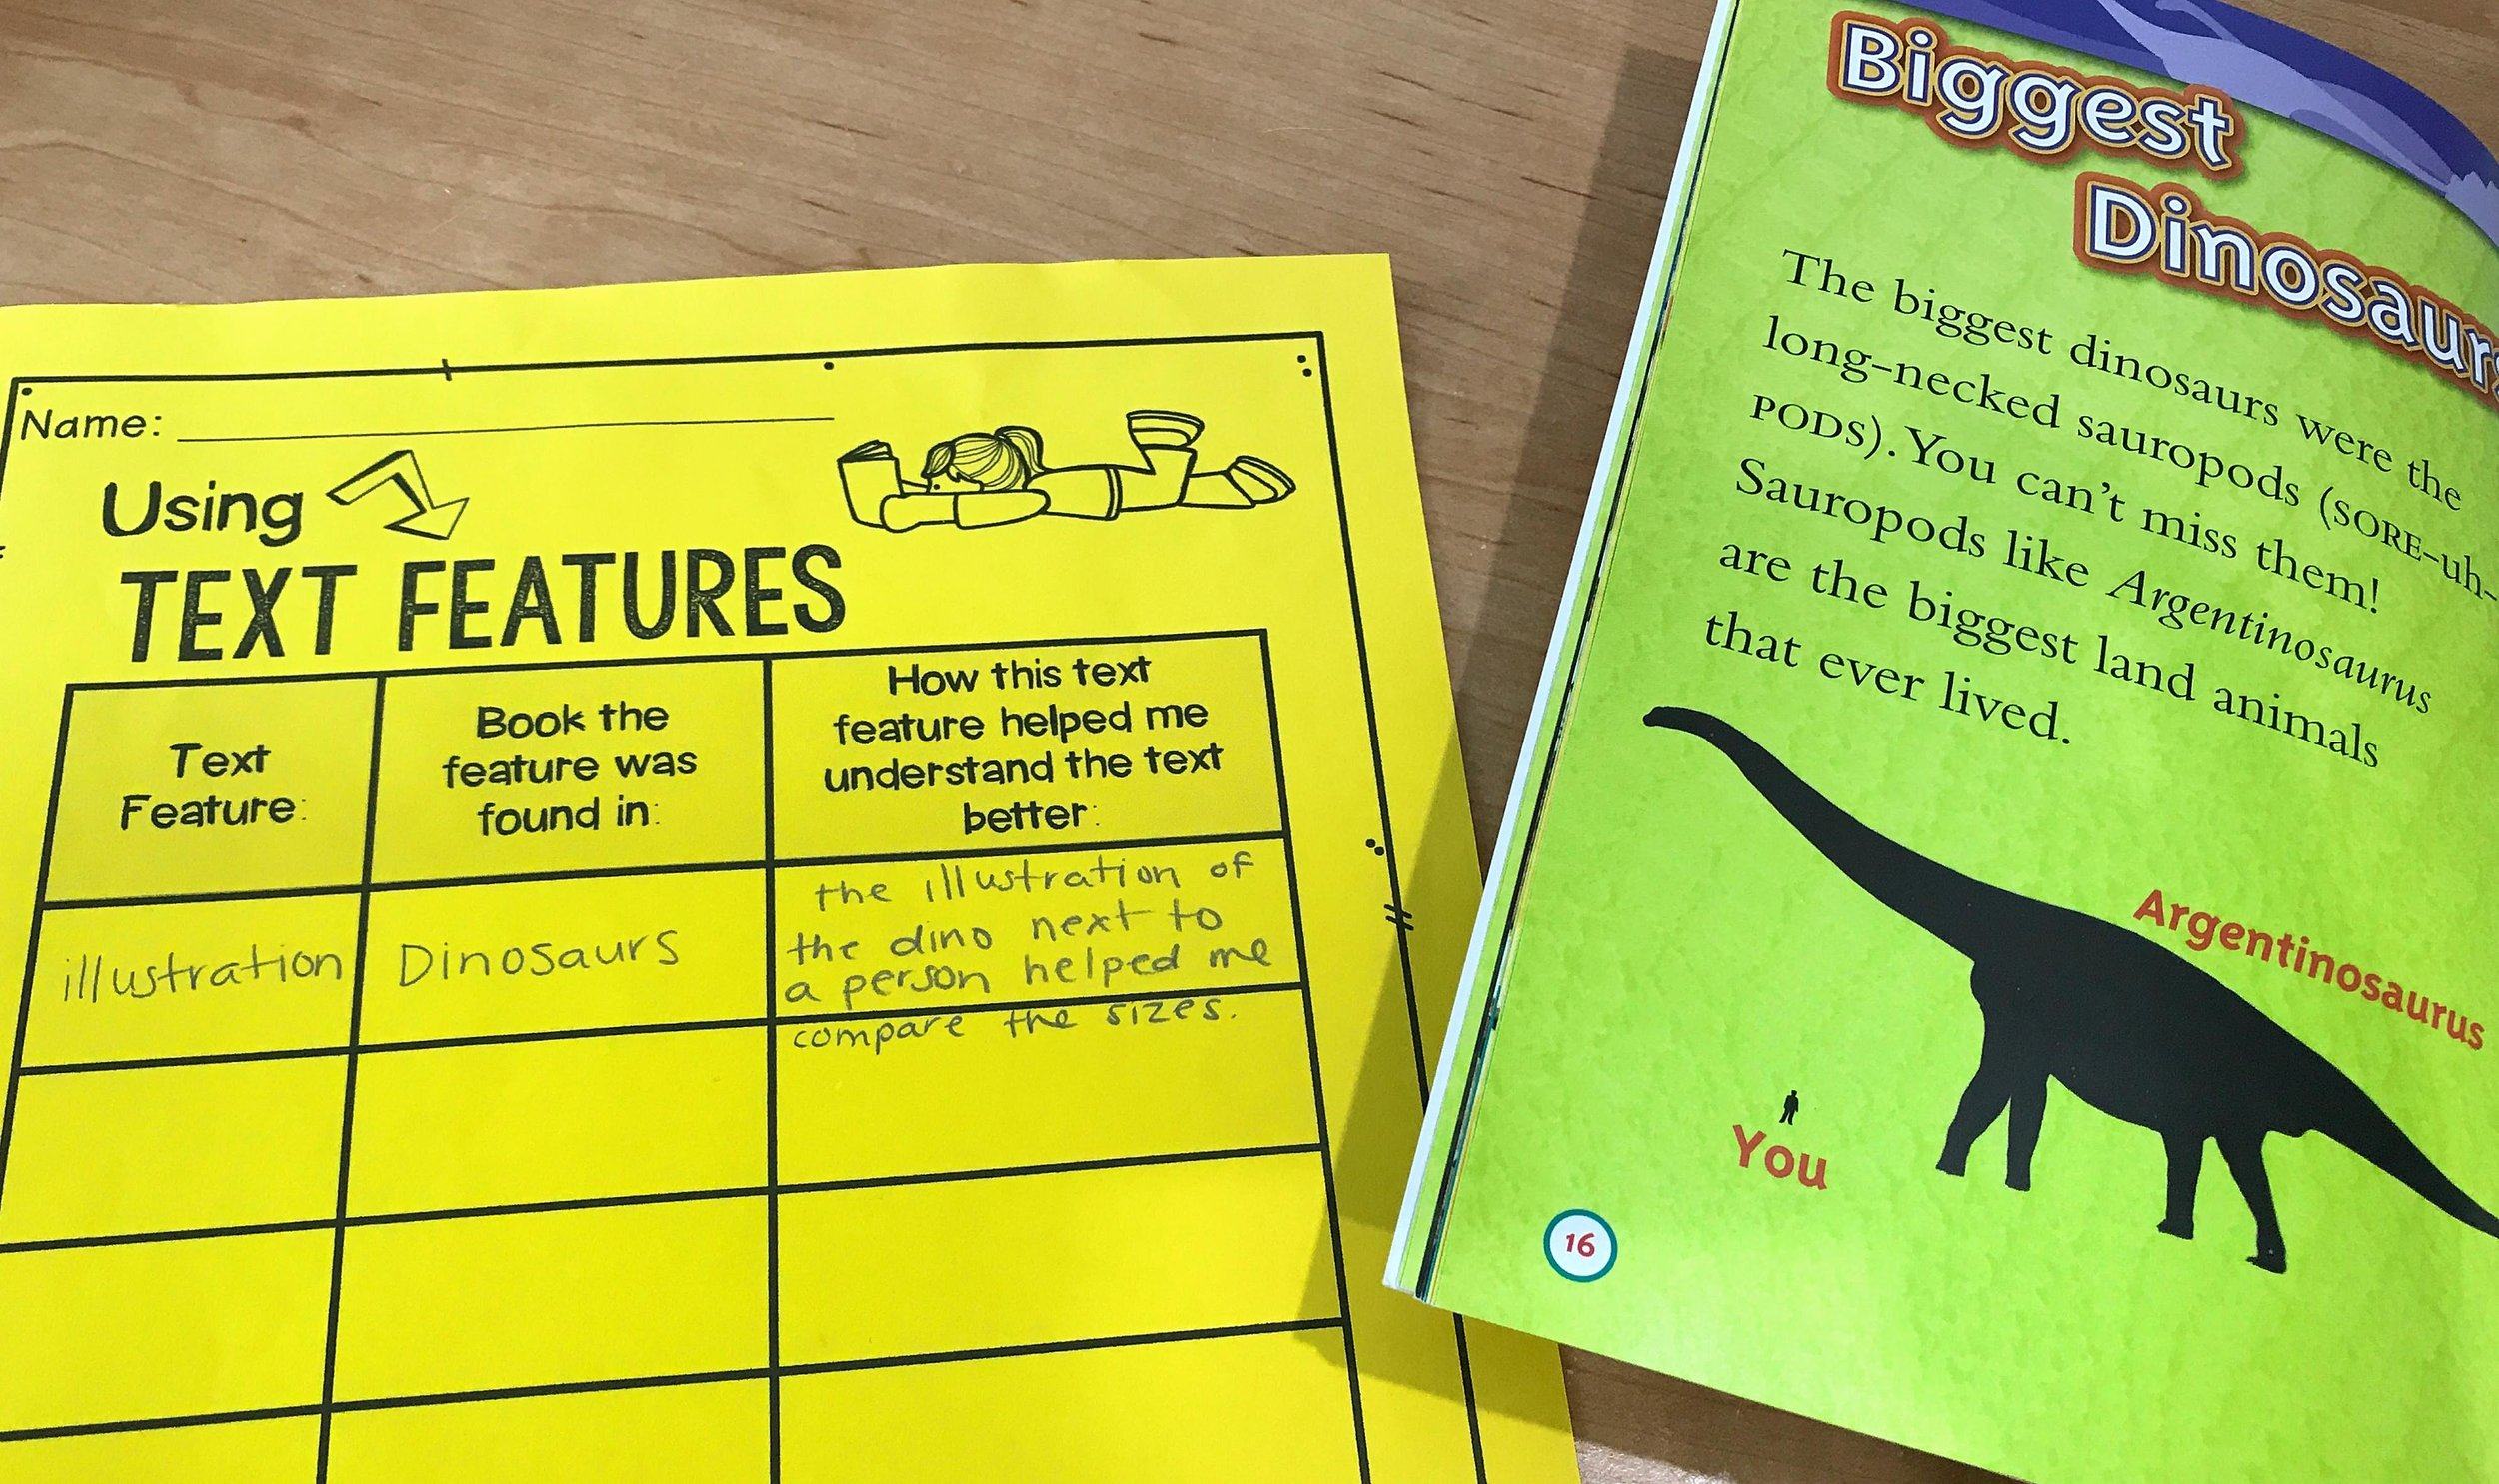 I also like to have students record the types of nonfiction text features that they are finding in their own individual books. I have students keep a simple chart where they record what text feature they found, what book it was found in, and how the feature helped their understanding of the text.